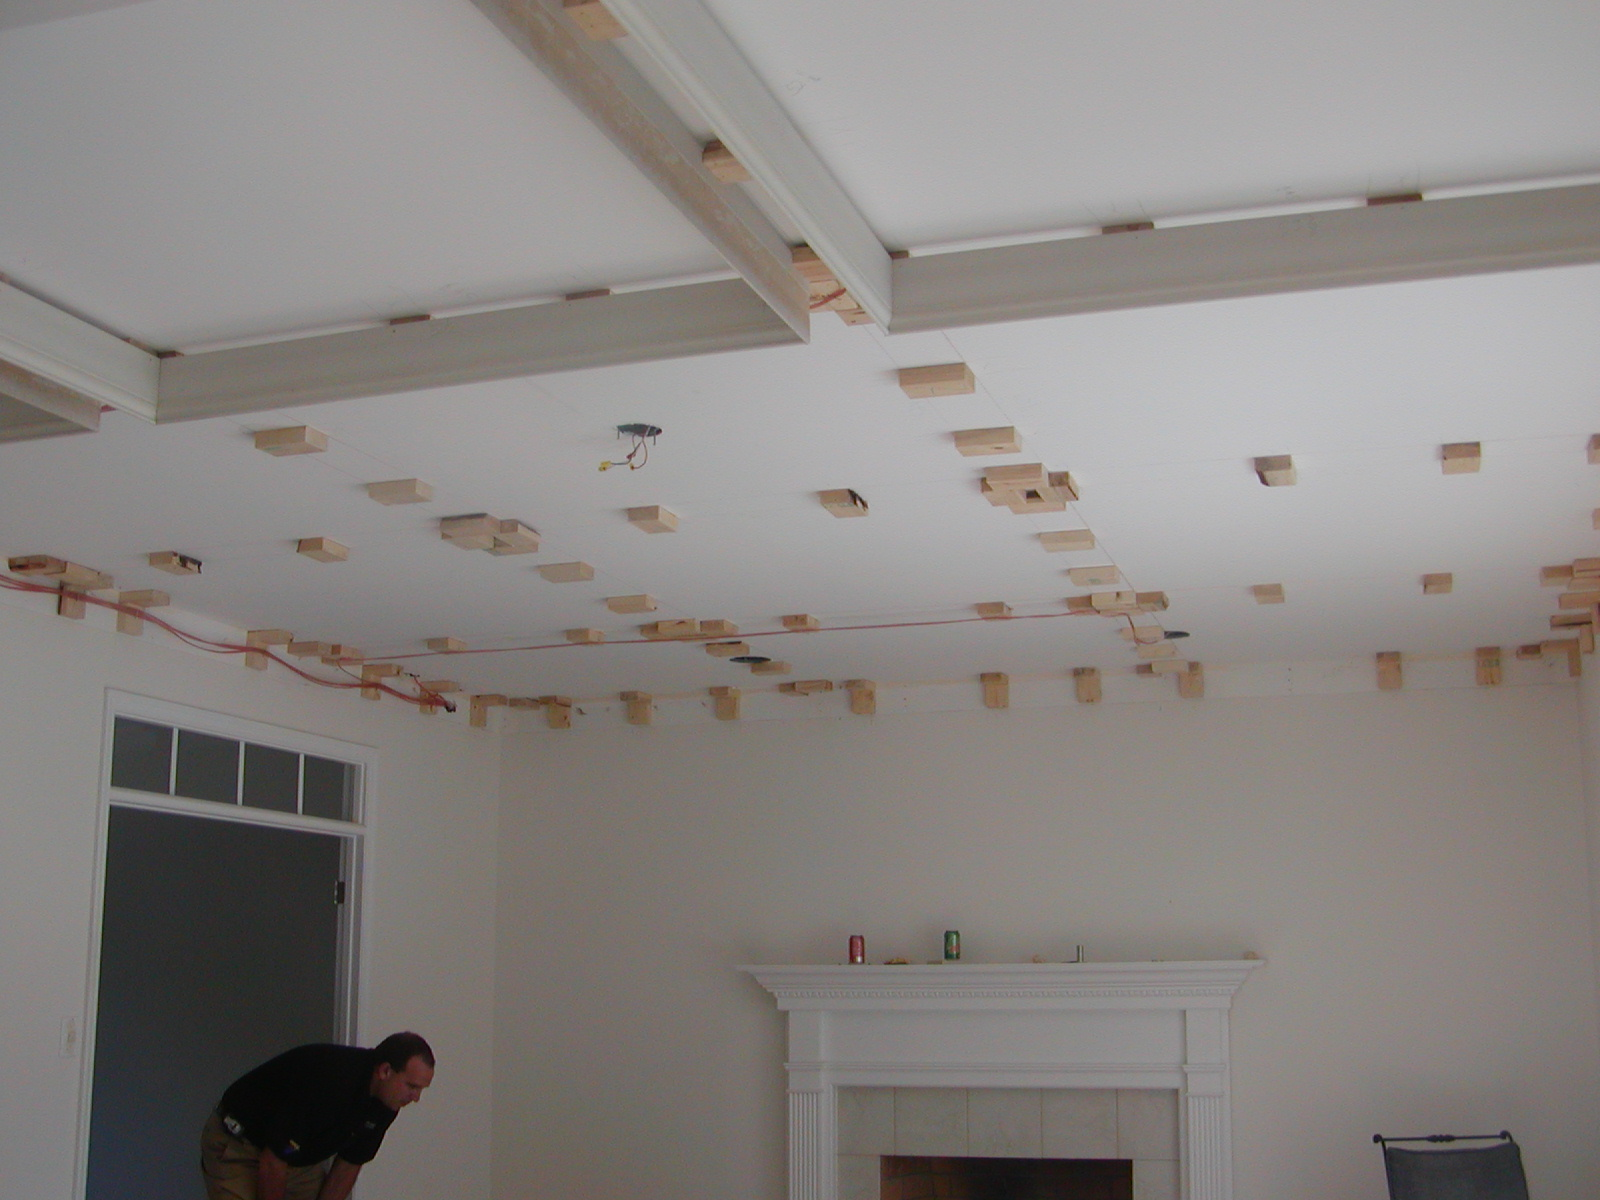 Toronto patterned coffered ceiling installation on white room with fireplace